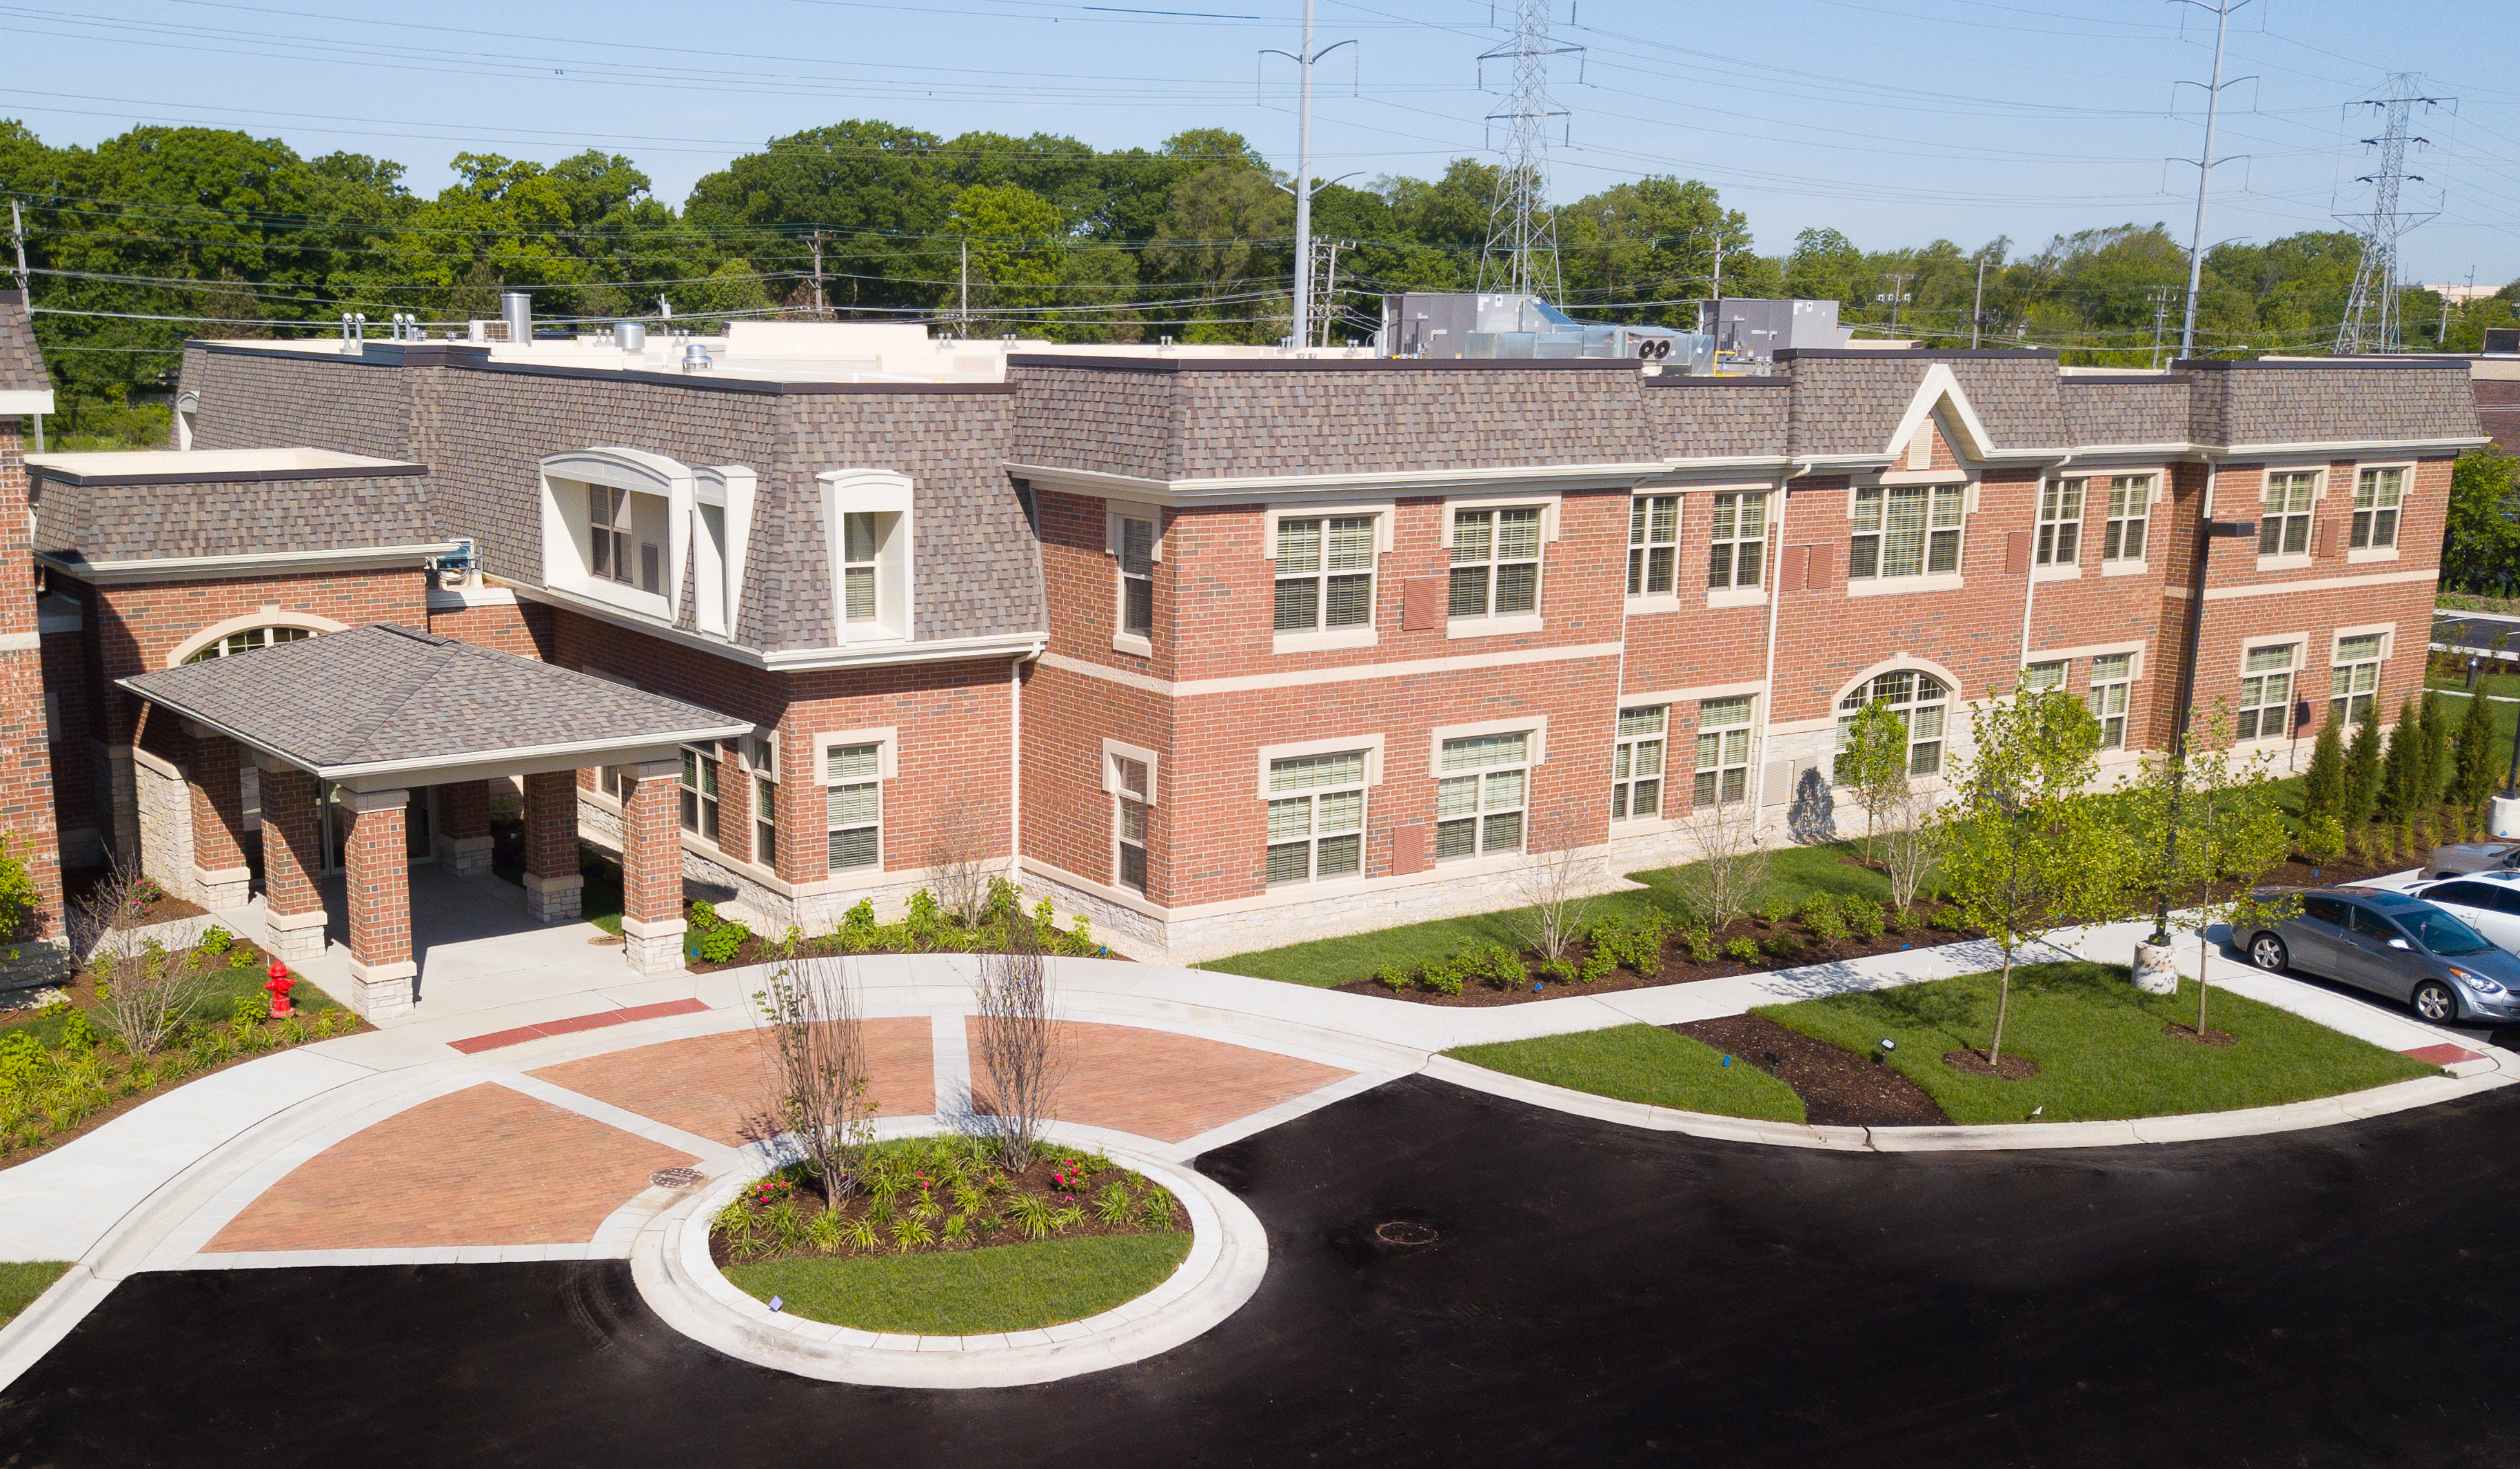 Chicago-Area Assisted Living Community Gets New Building